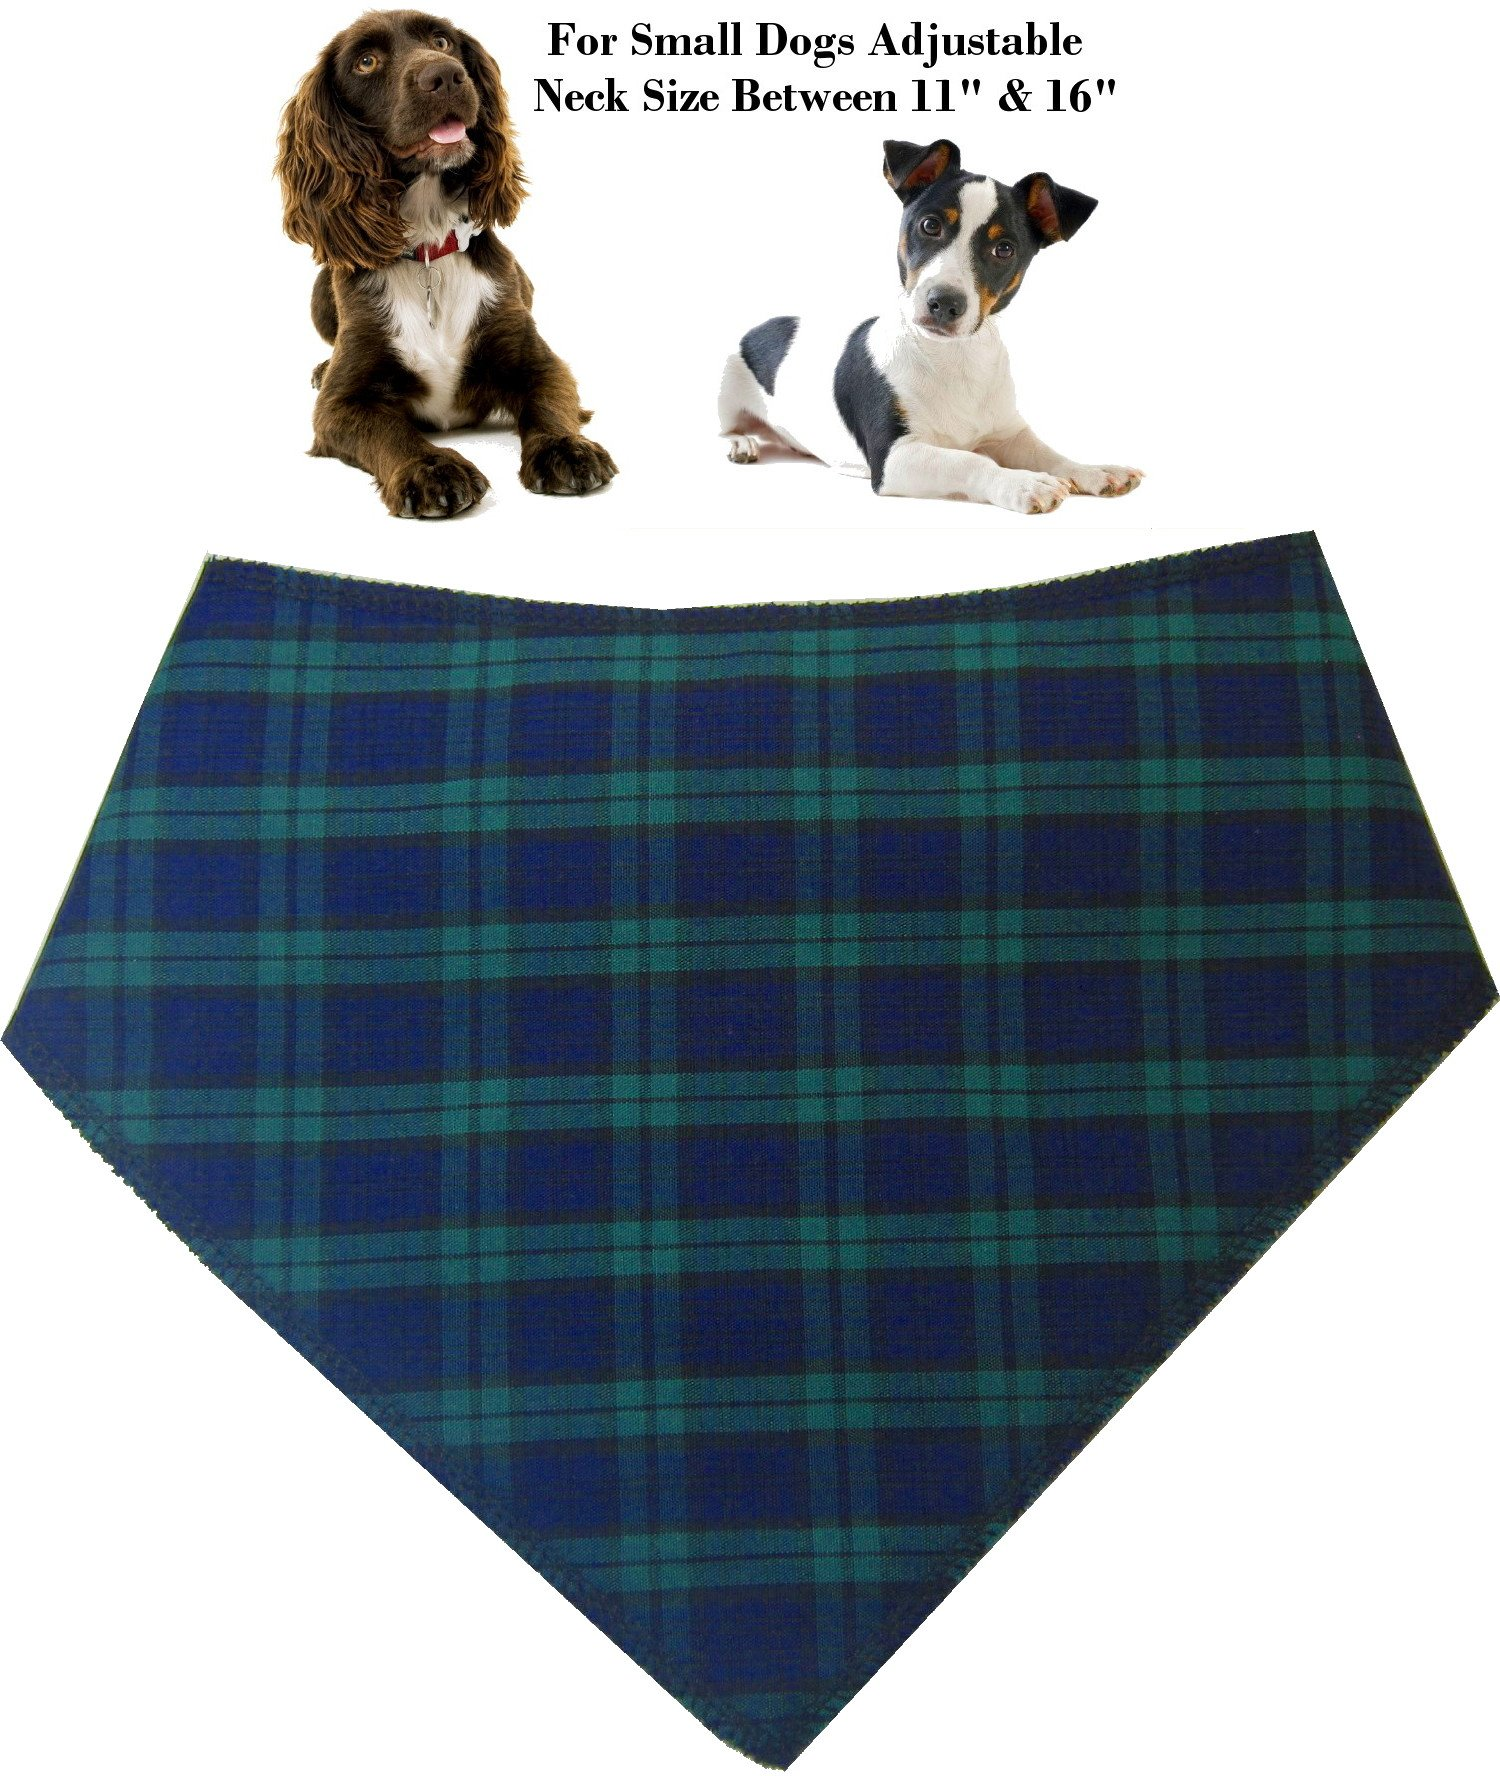 Spoilt Rotten Pets (S2) Branded Blue Tartan Dog Bandana. Adjustable Neck to Fit Small To Medium Dogs – Neck Size 11″ – 16″ Generally Fits Cocker Spaniel, Border Terrier, Jack Russell, Westies and Shih Tzu Sized Dogs.